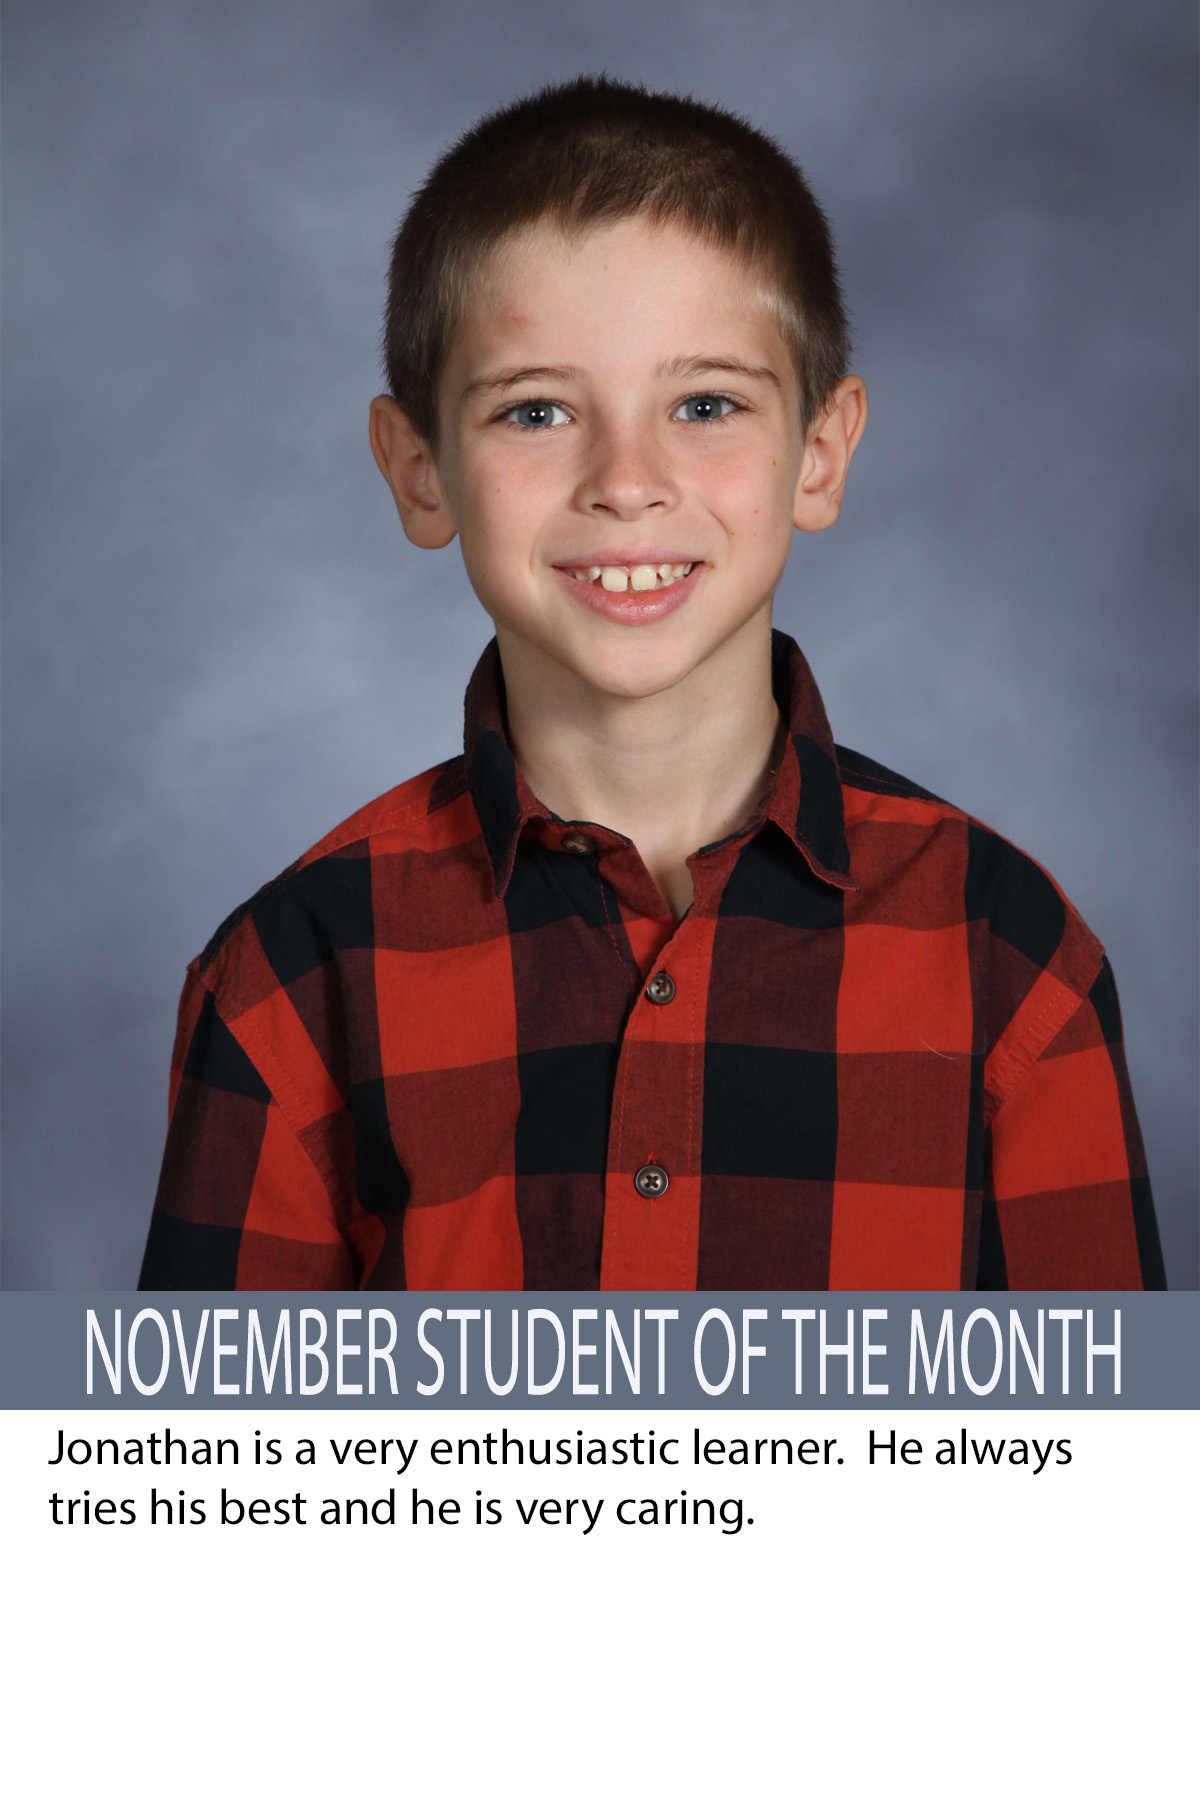 Mrs. Humphrey's November Student of the Month